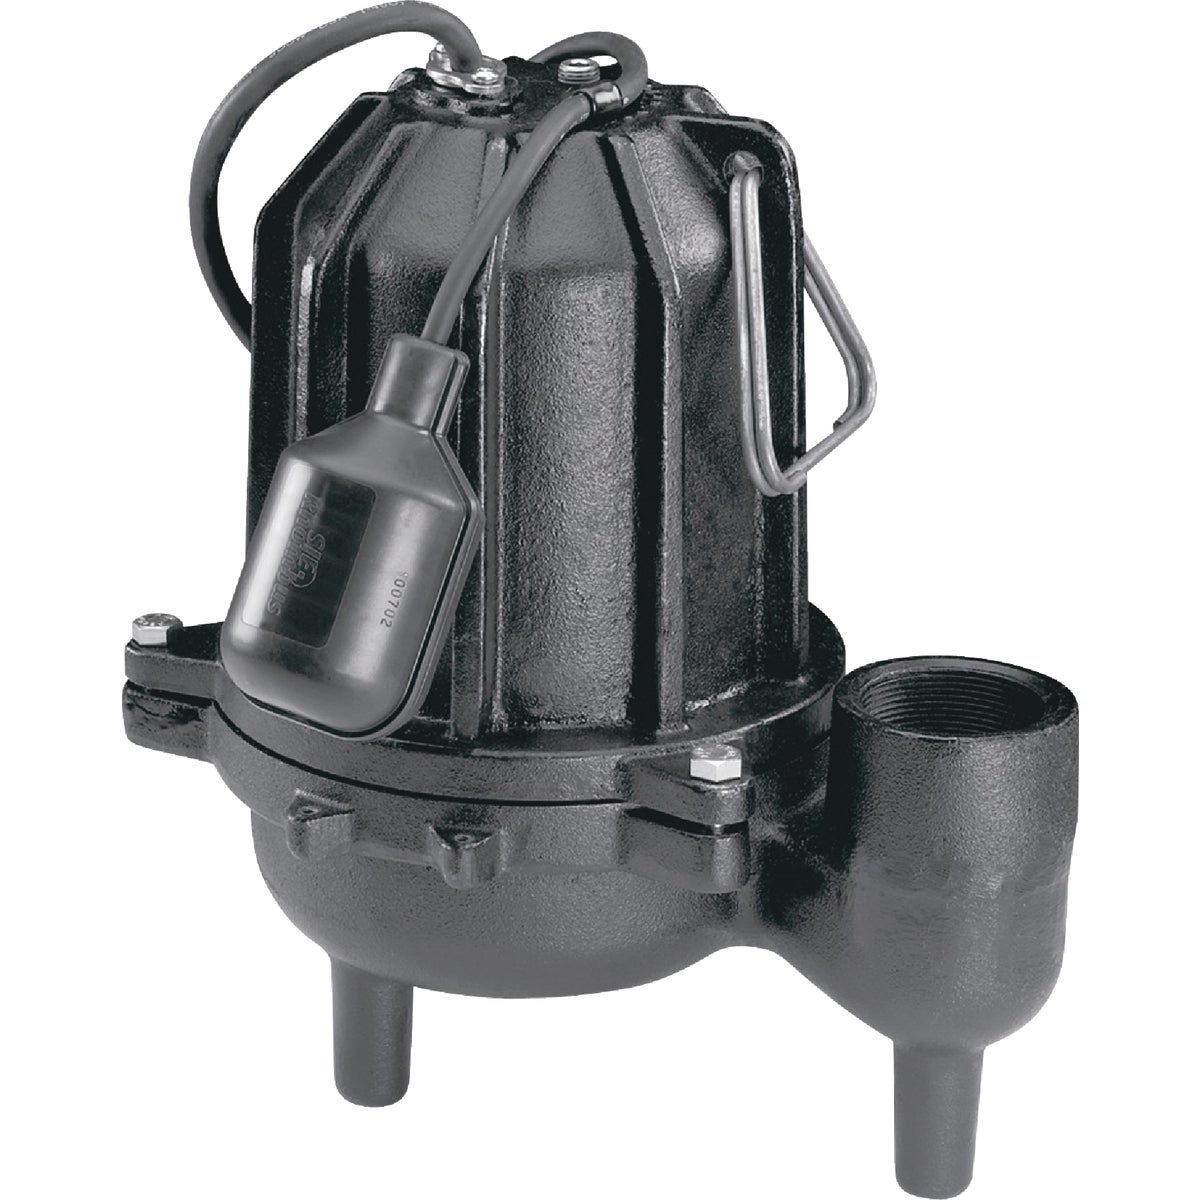 1/2HP CAST SEWAGE PUMP